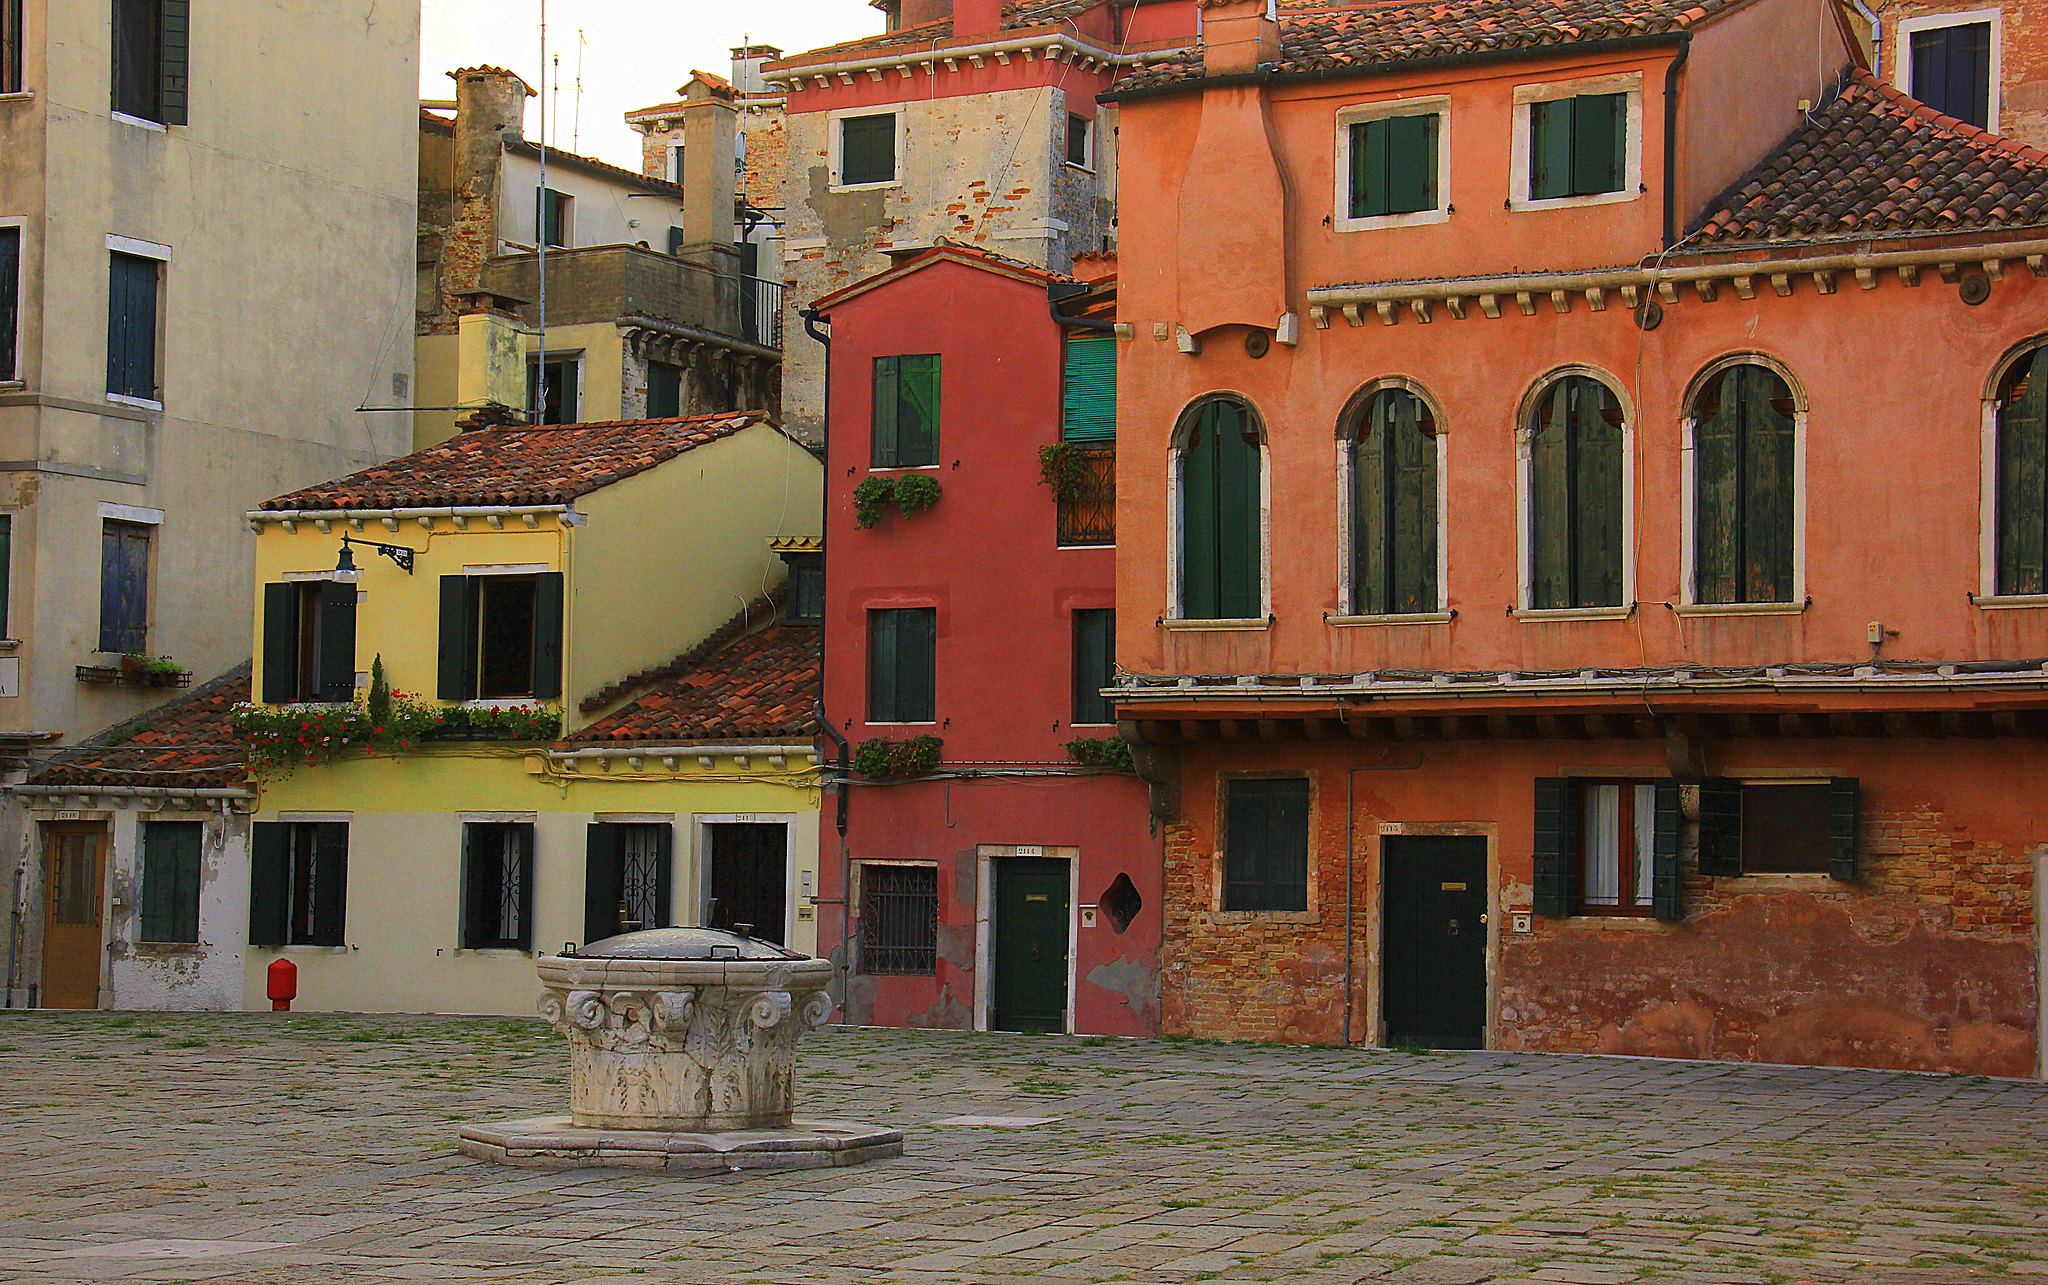 A square near Doges Palace in Venice